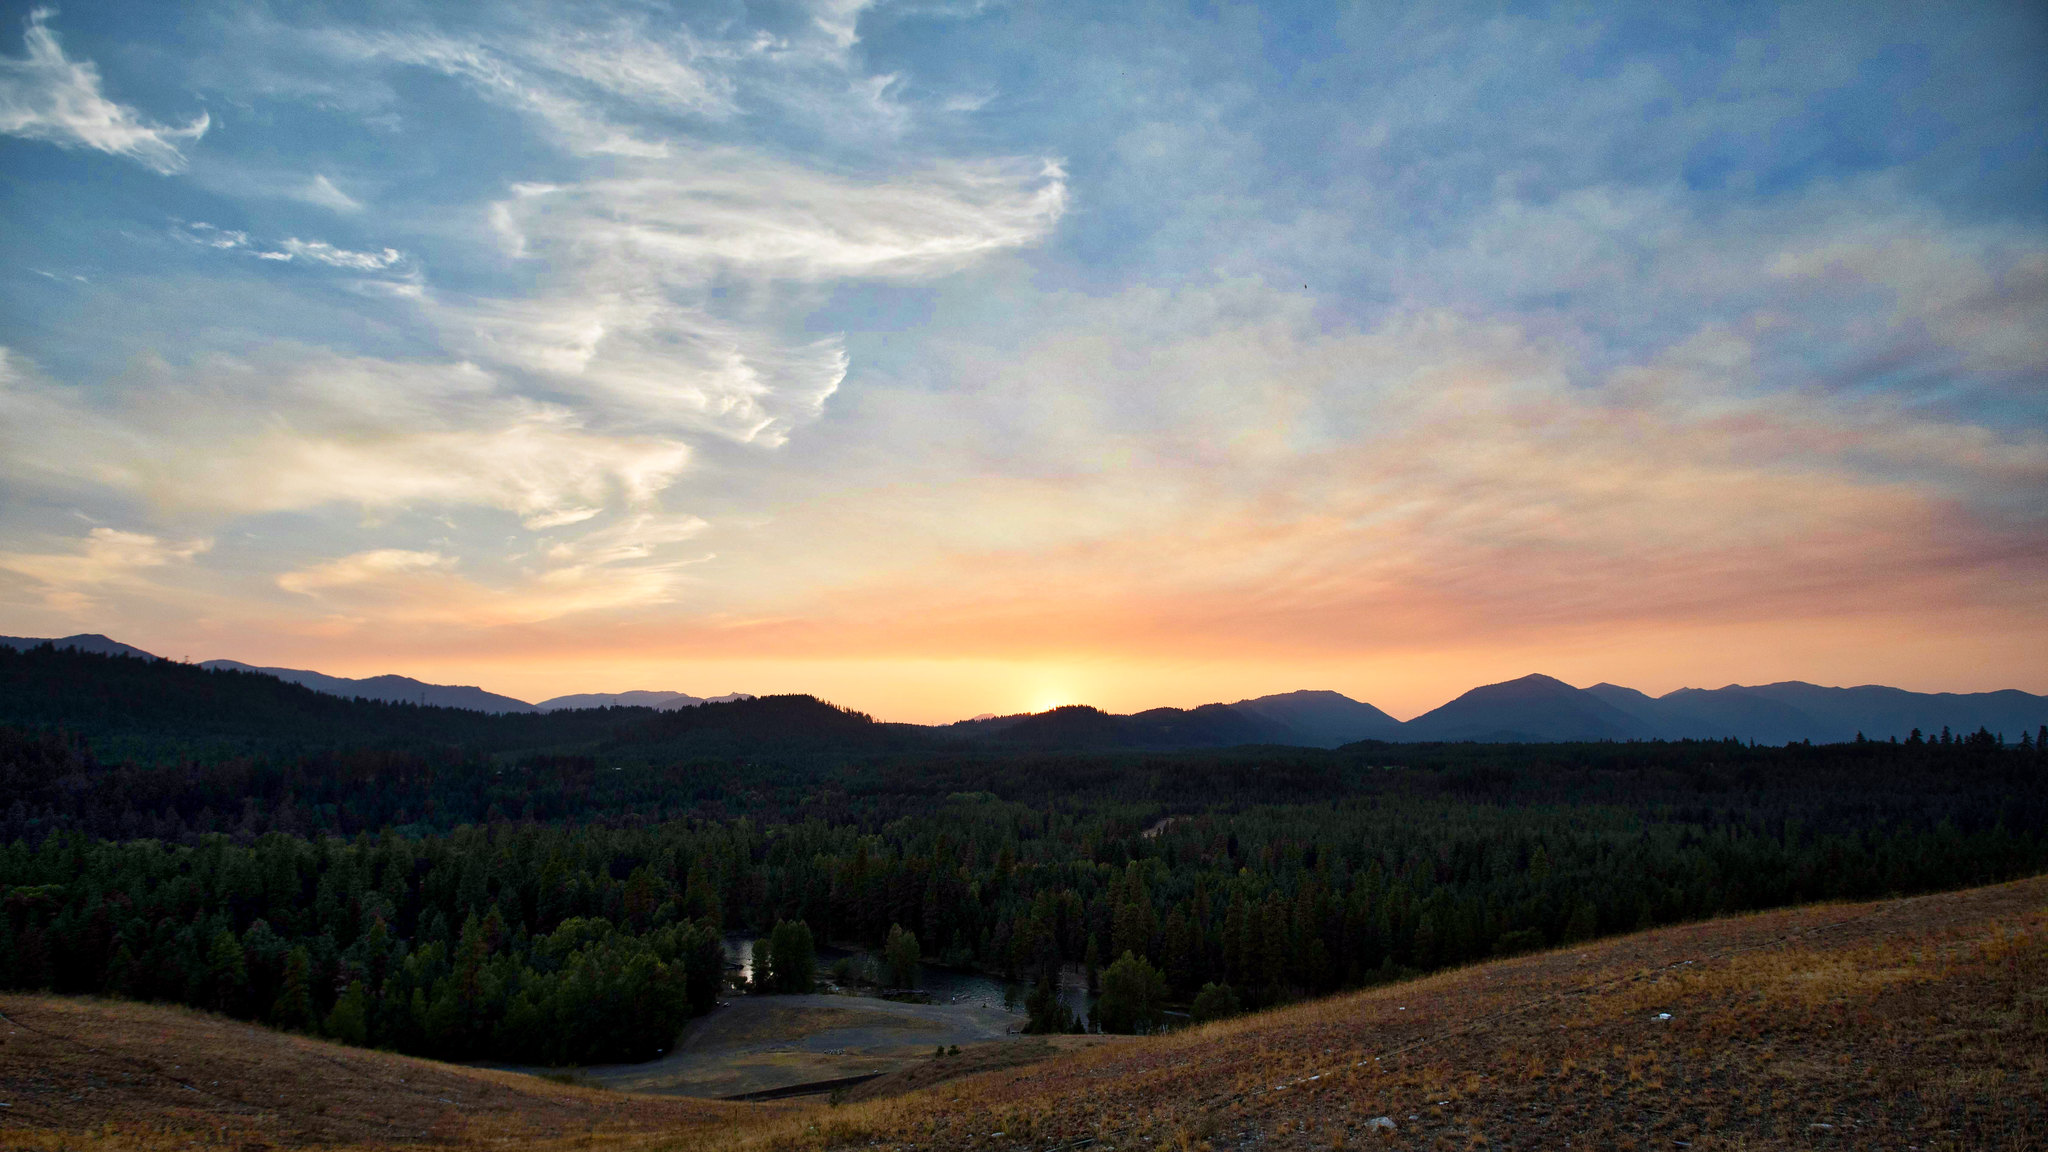 Sunset in Suncadia by Brandon Bohling